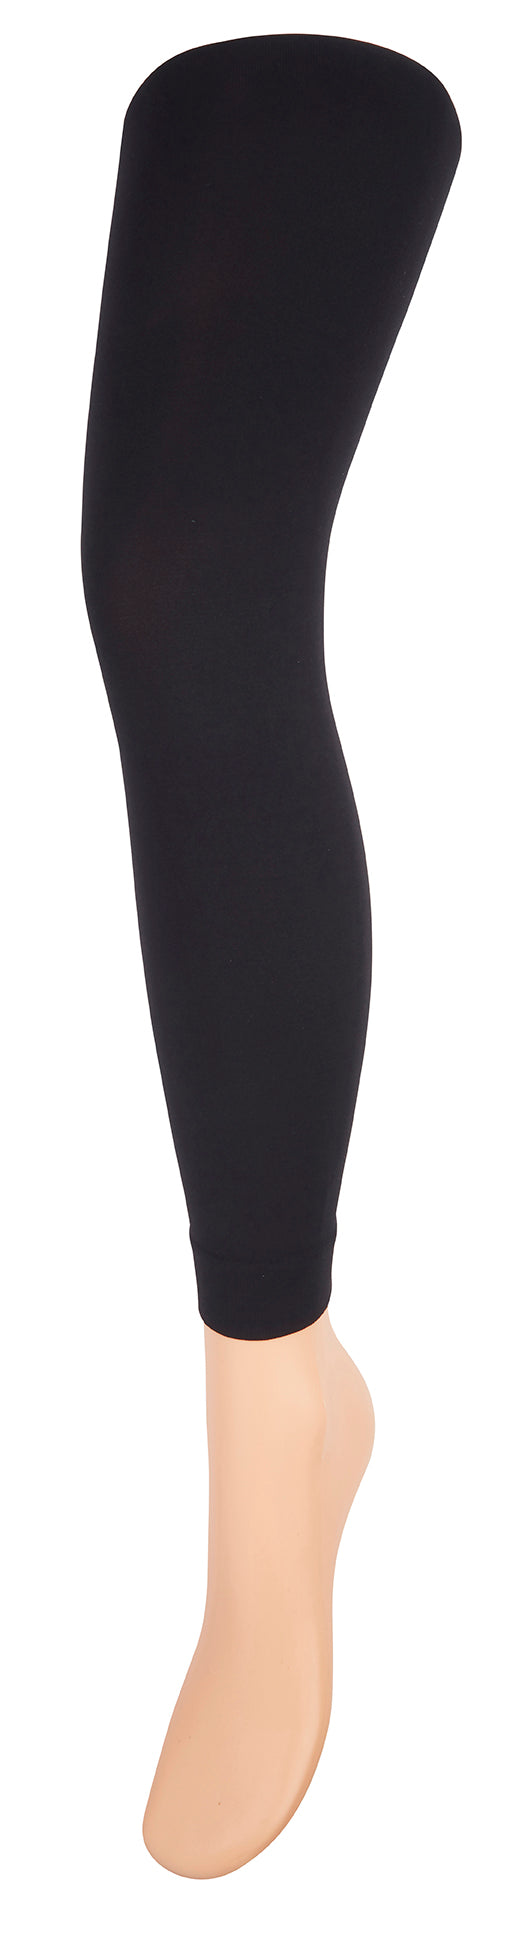 Ms Shape 120 Denier Opaque Leggings